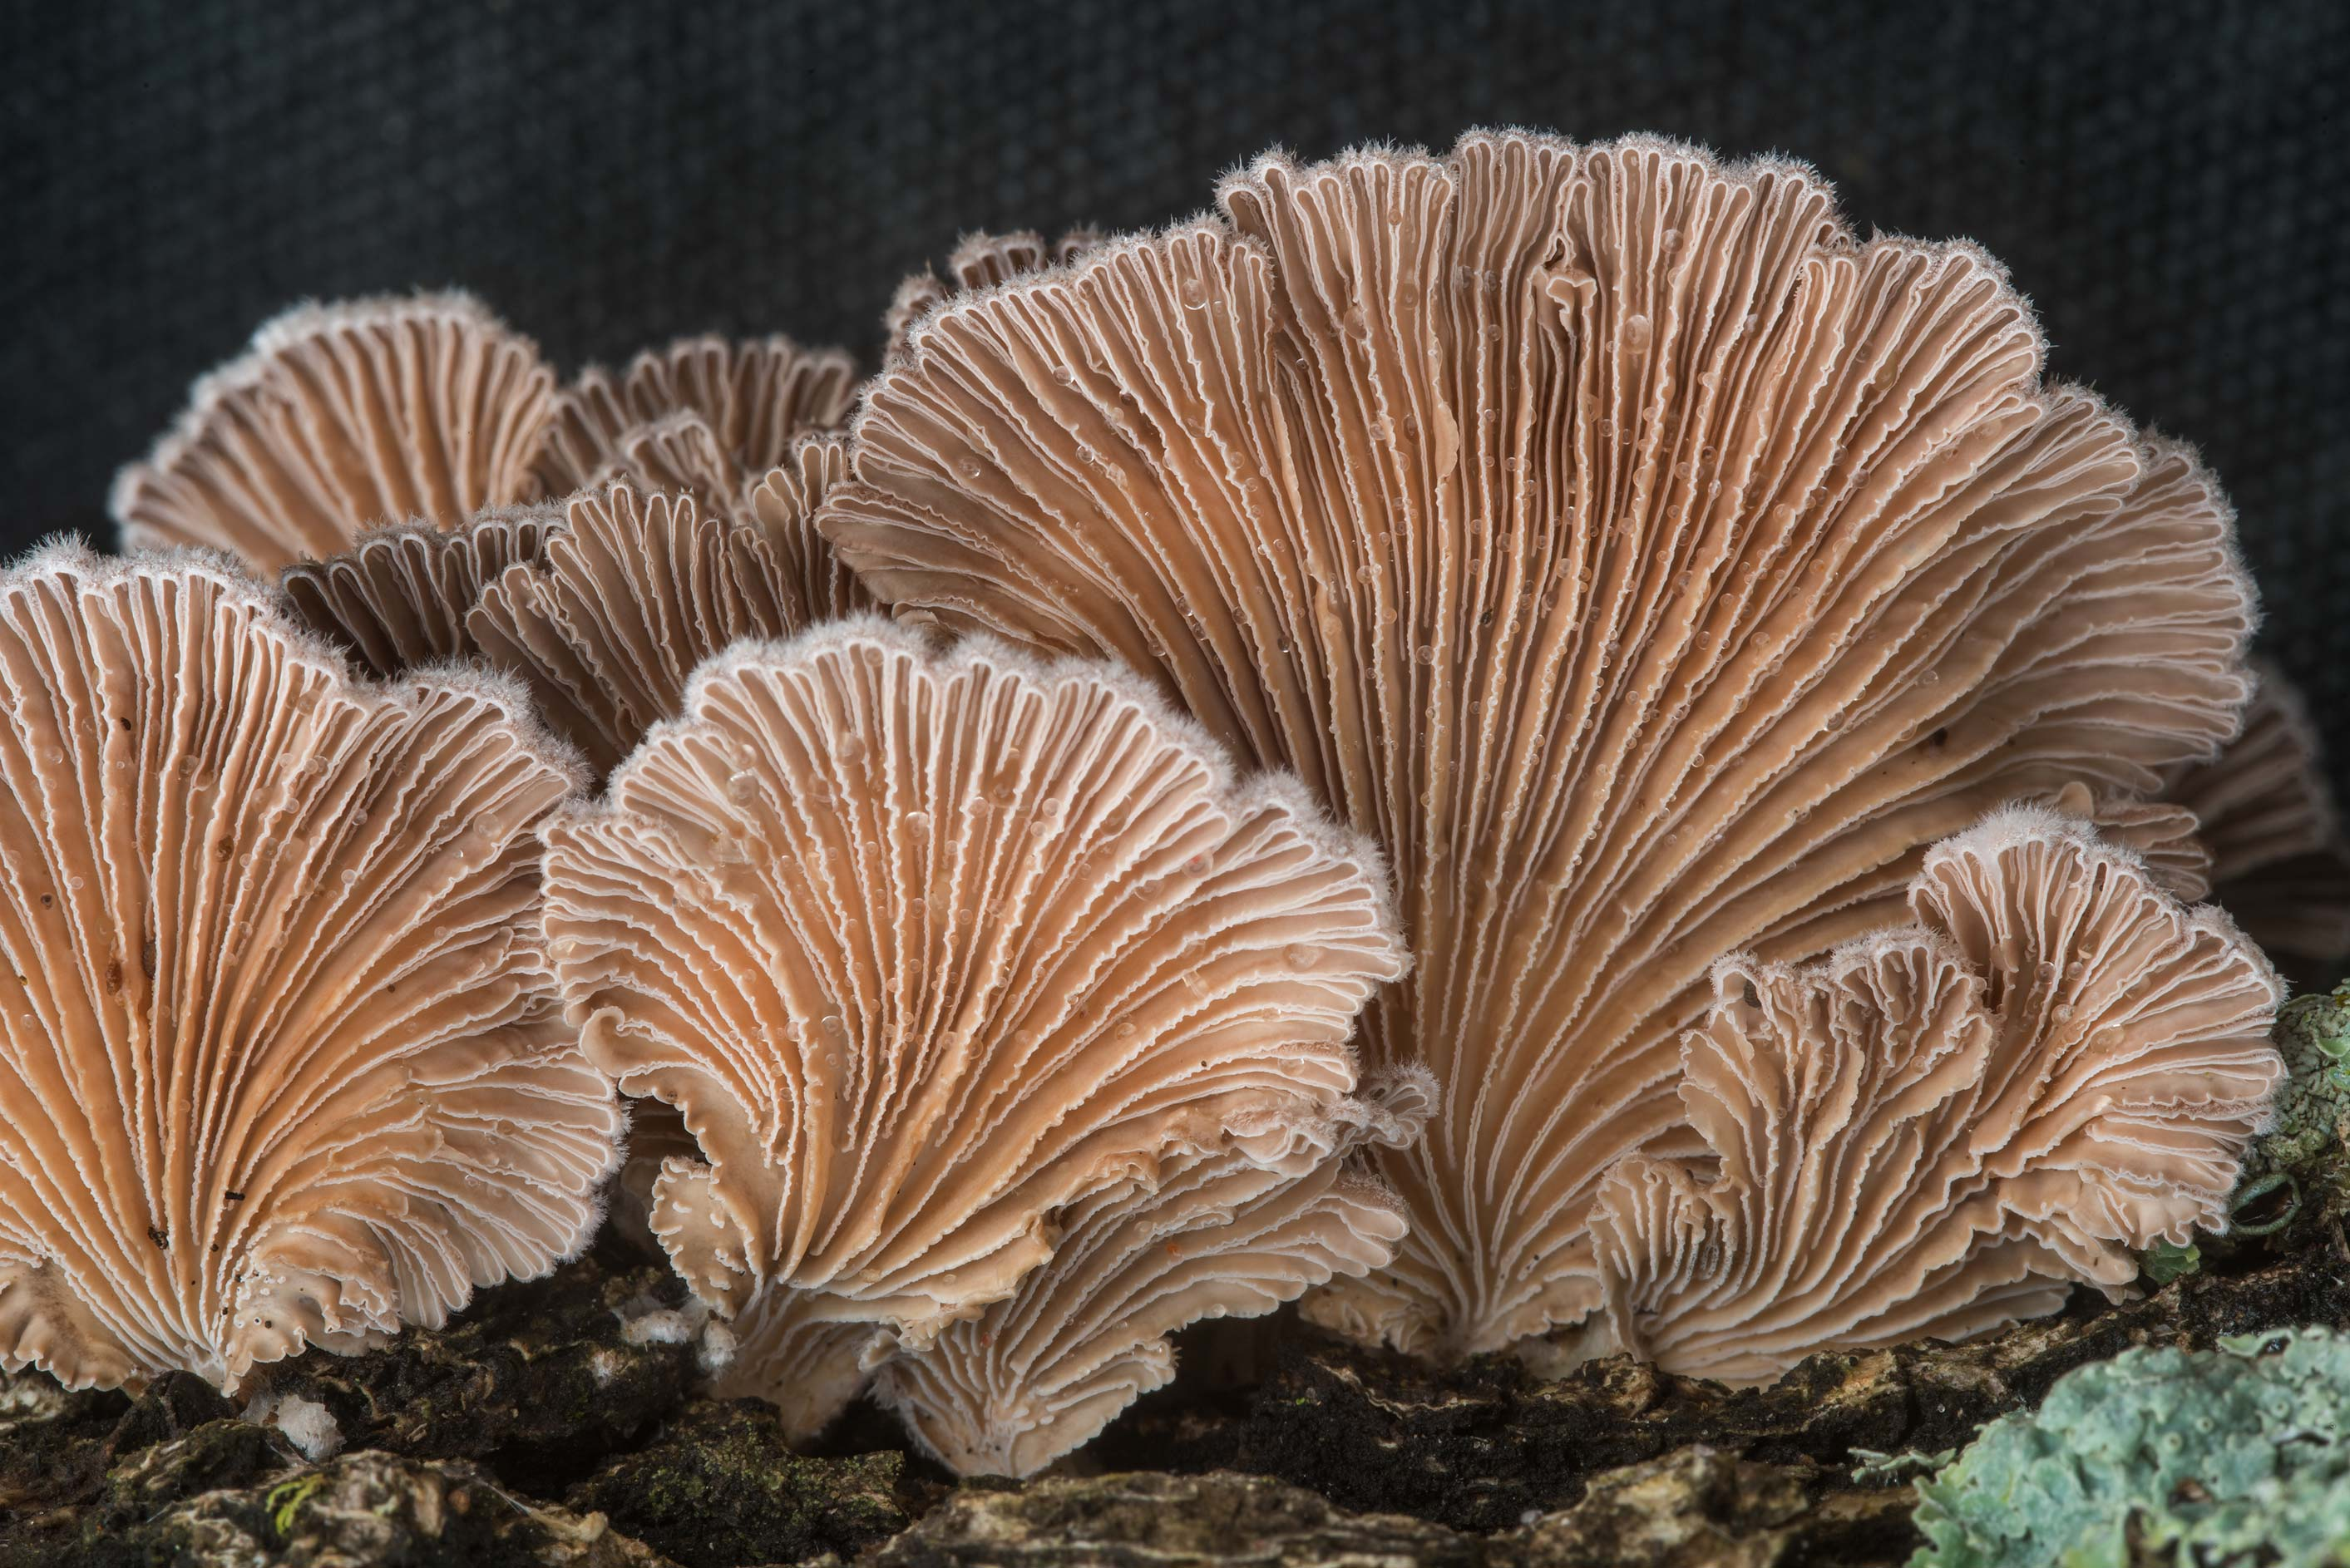 Gills of split gill fungus Schizophyllum commune in Bee Creek Park. College Station, Texas